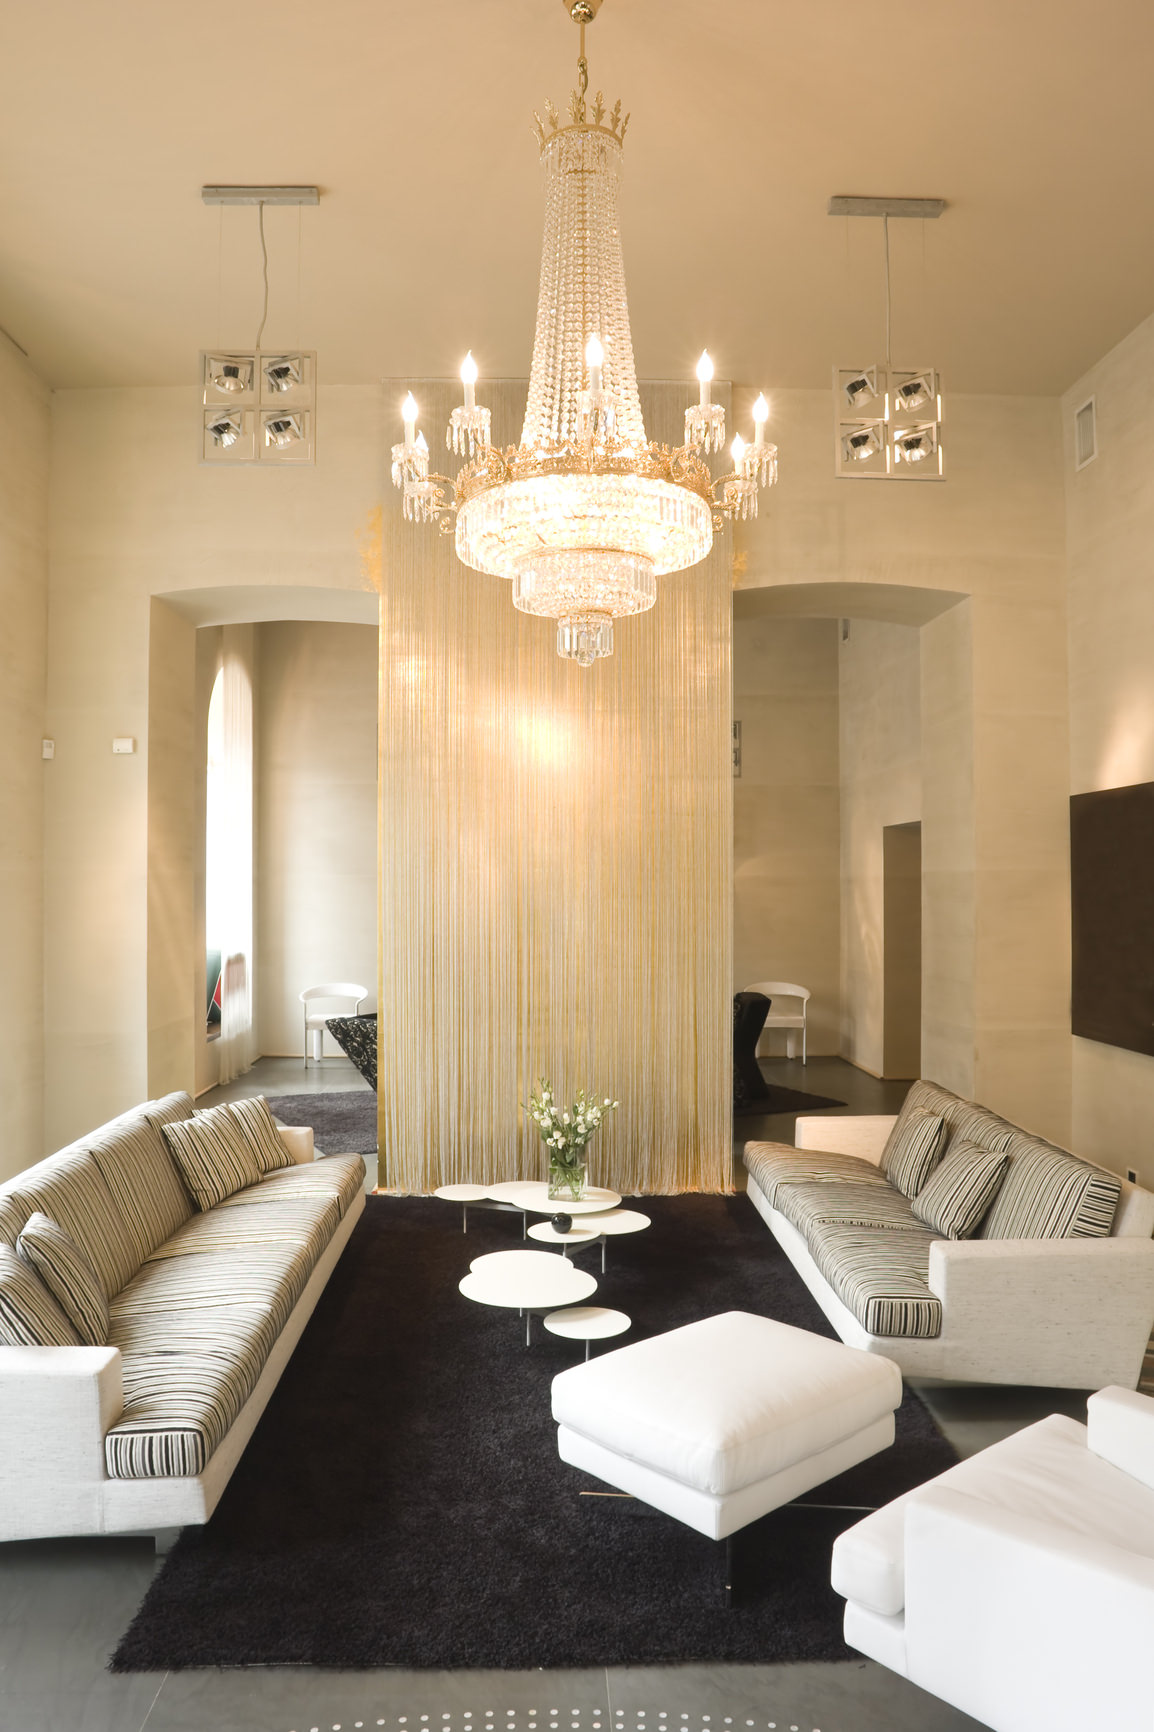 A Formal Living E Featuring An Elegant Grand Chandelier Lighting Up The Room